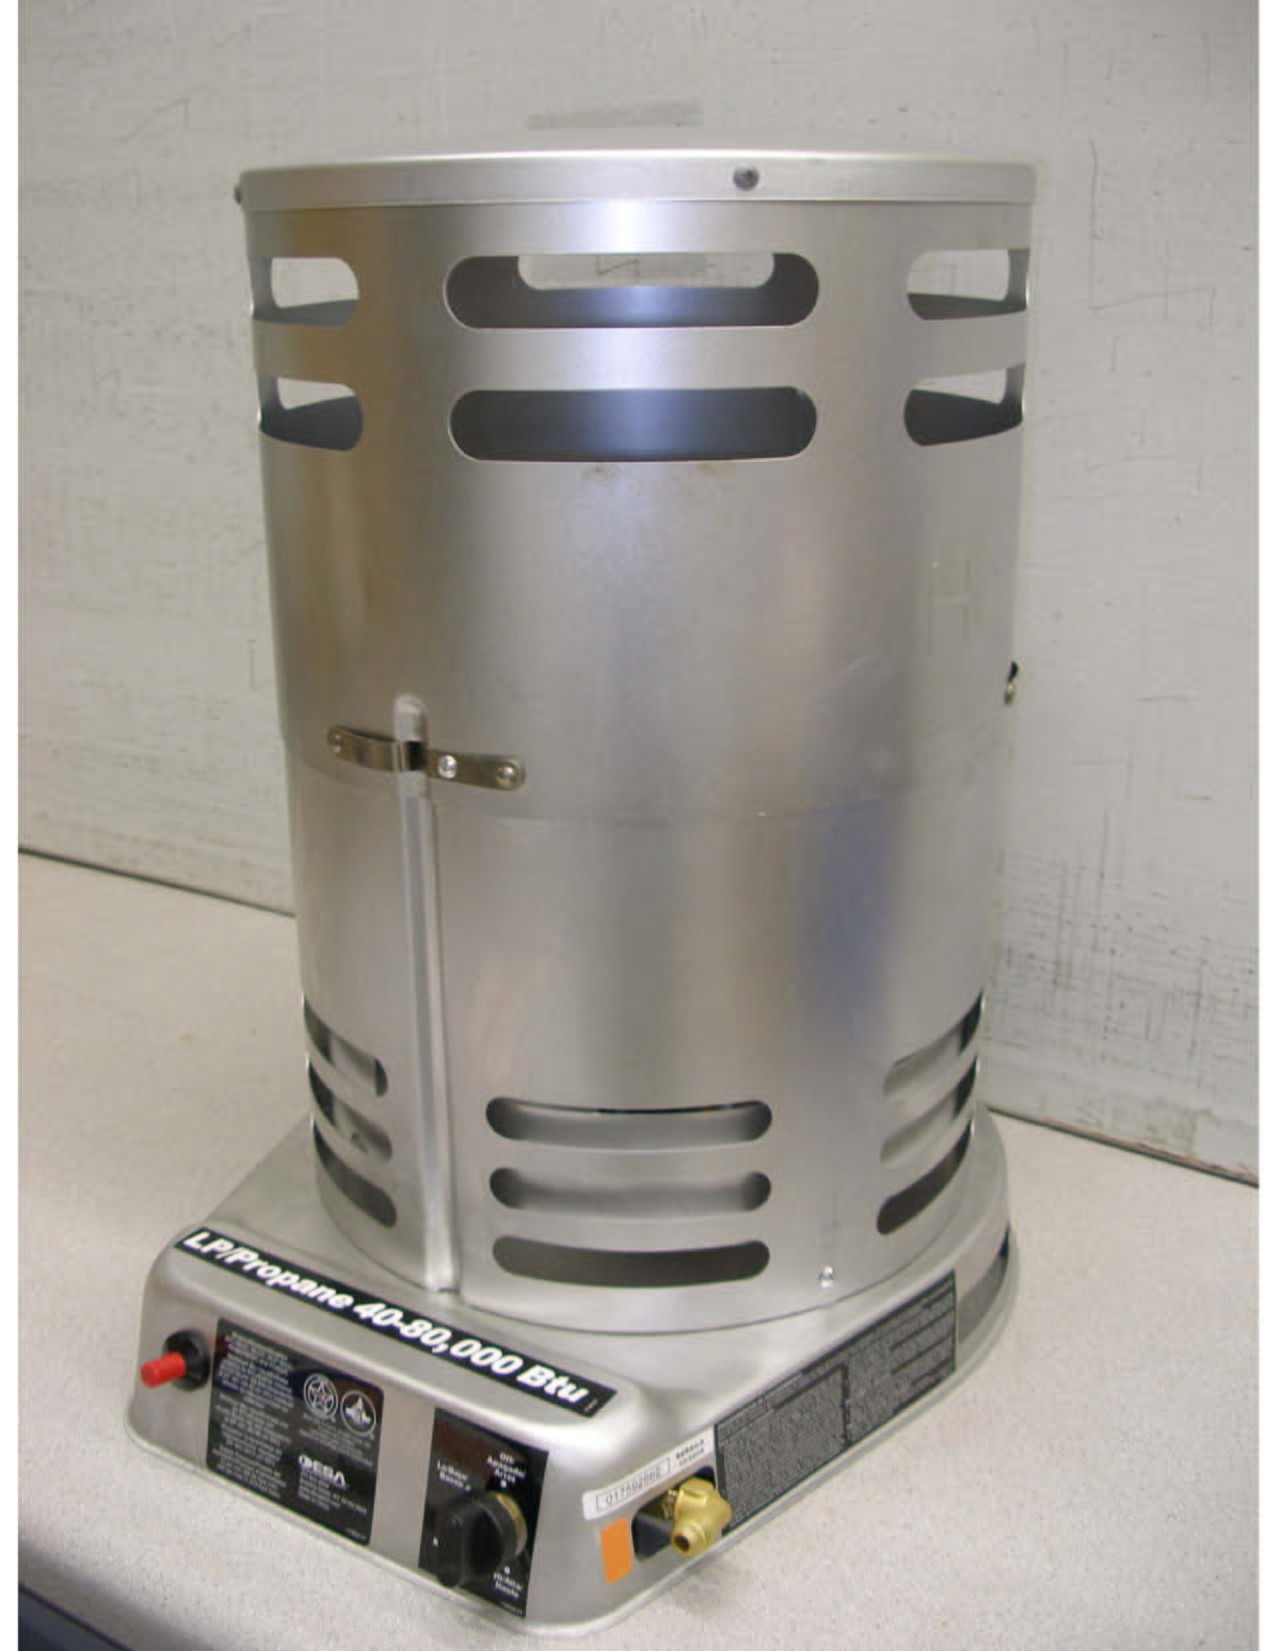 DESA Heating Products Recalls Portable Propane Convection